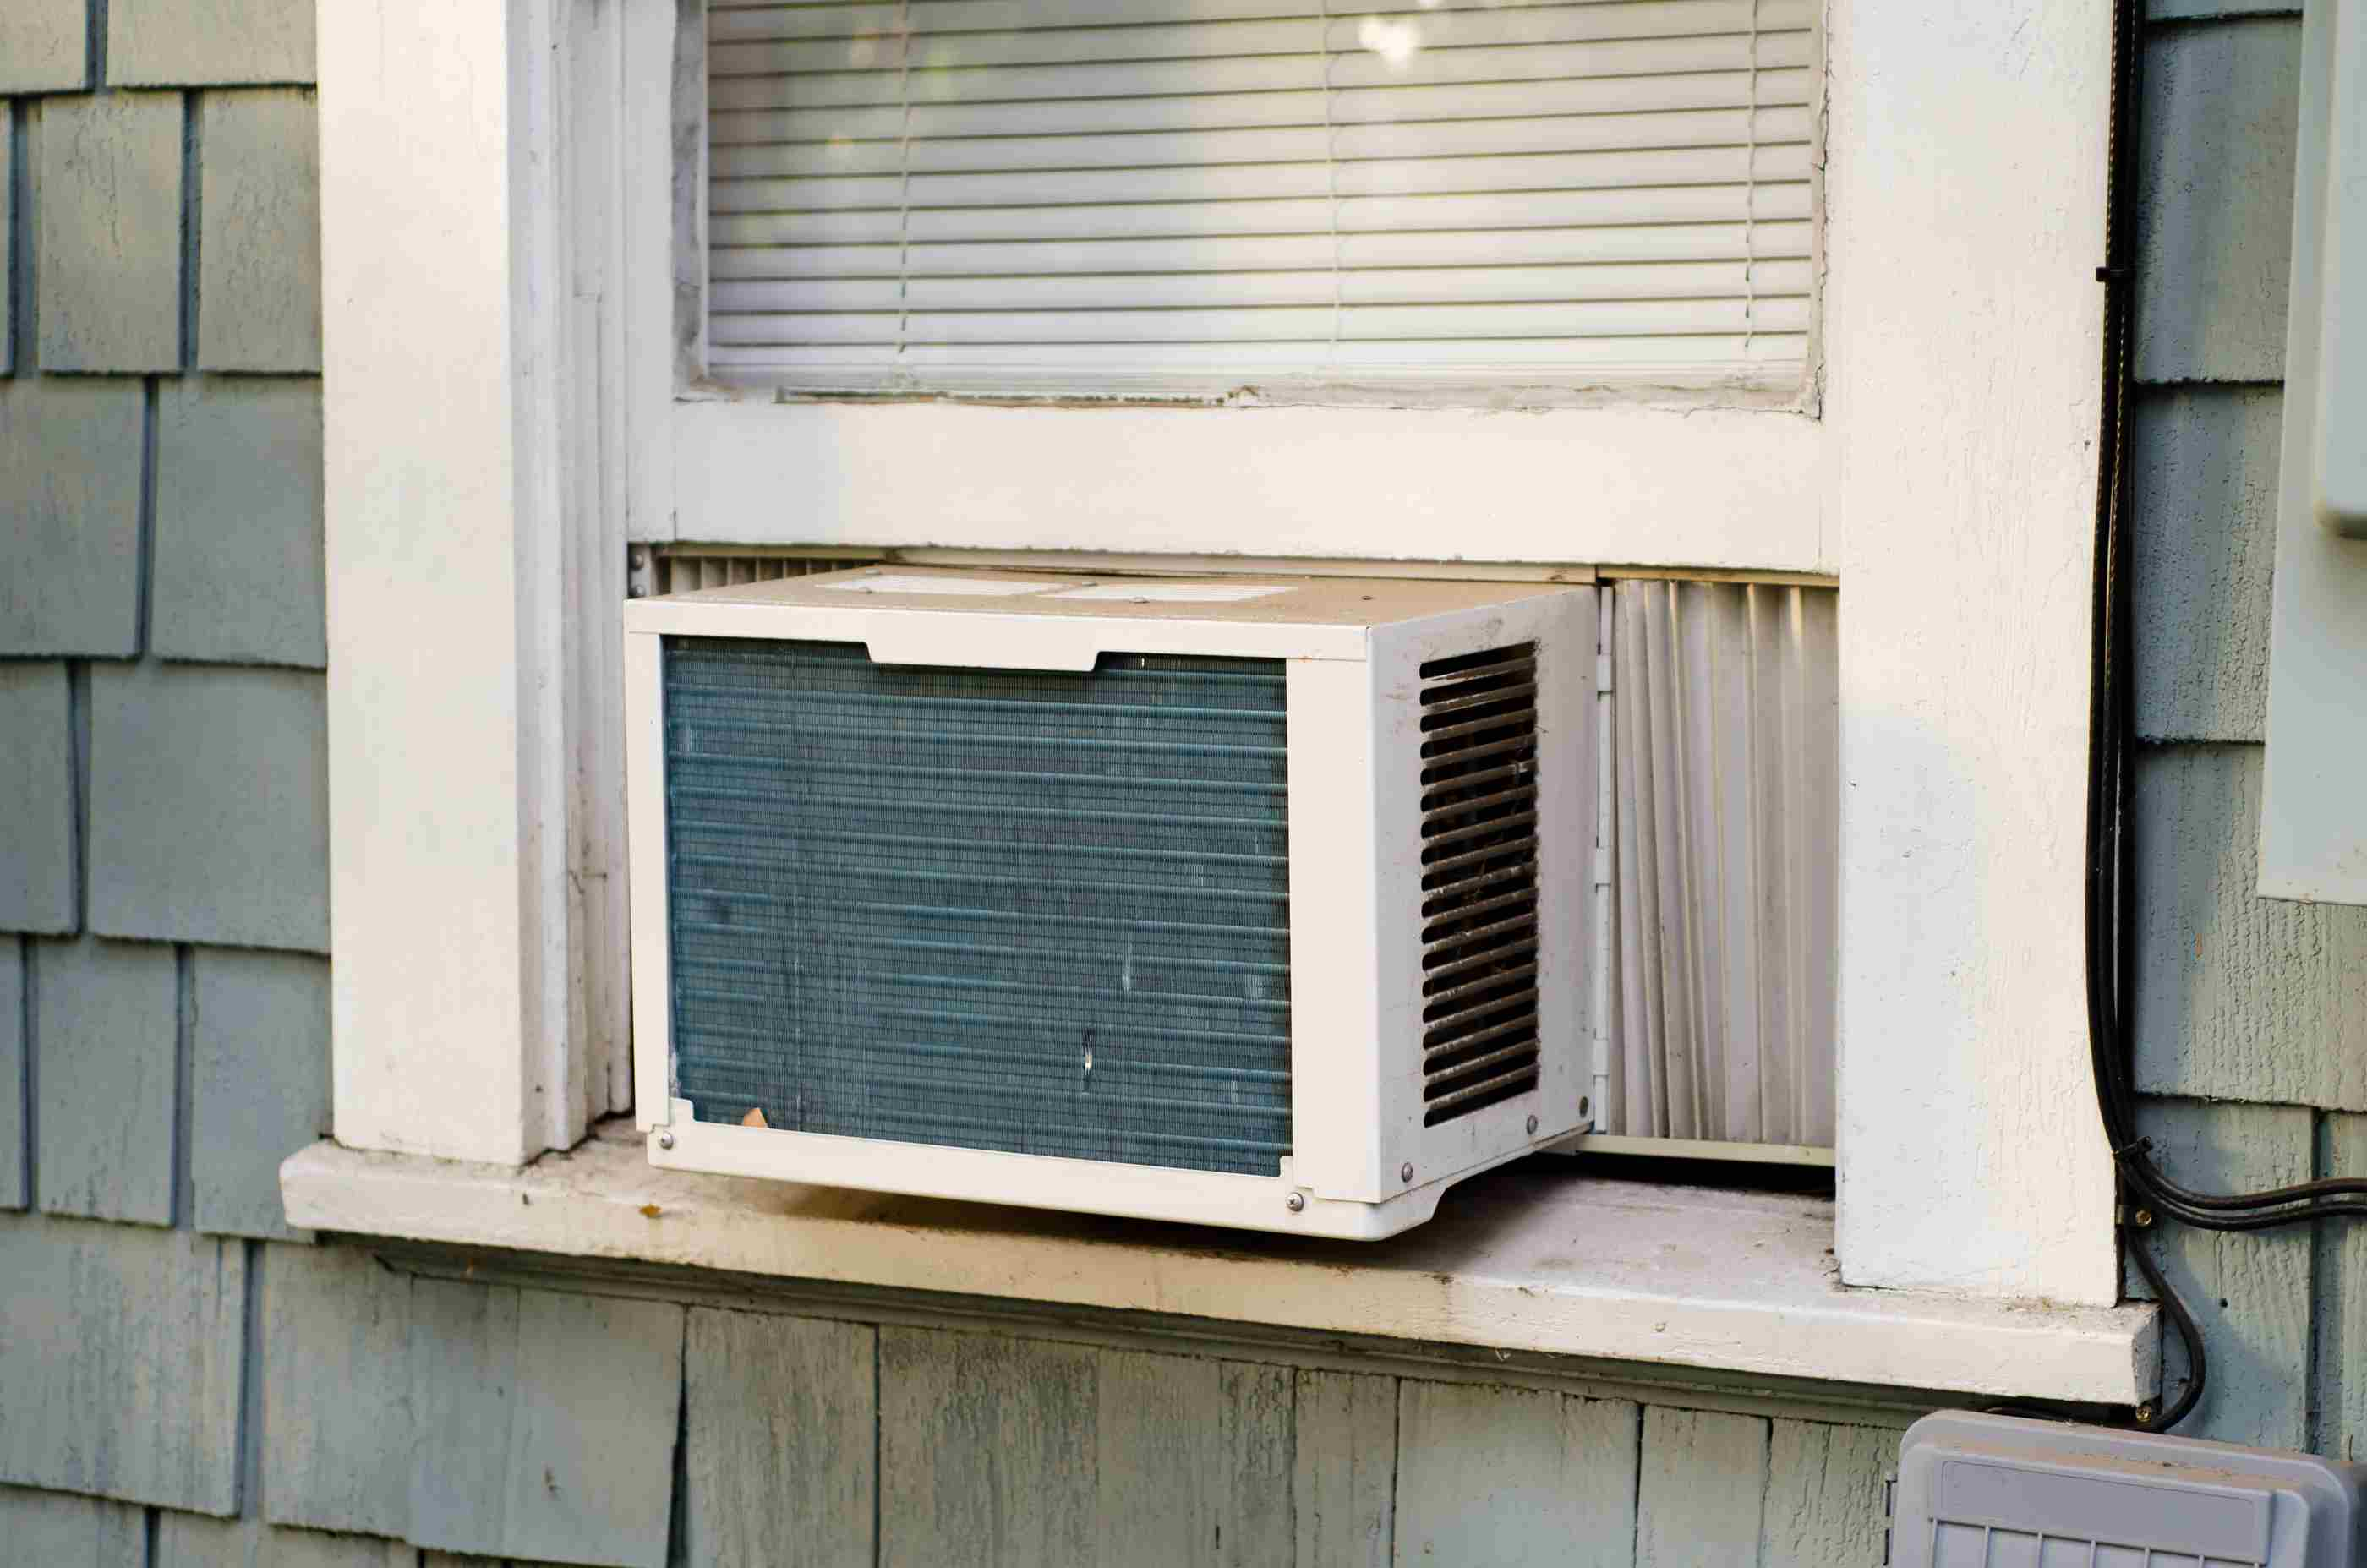 Outside view of window air conditioner.